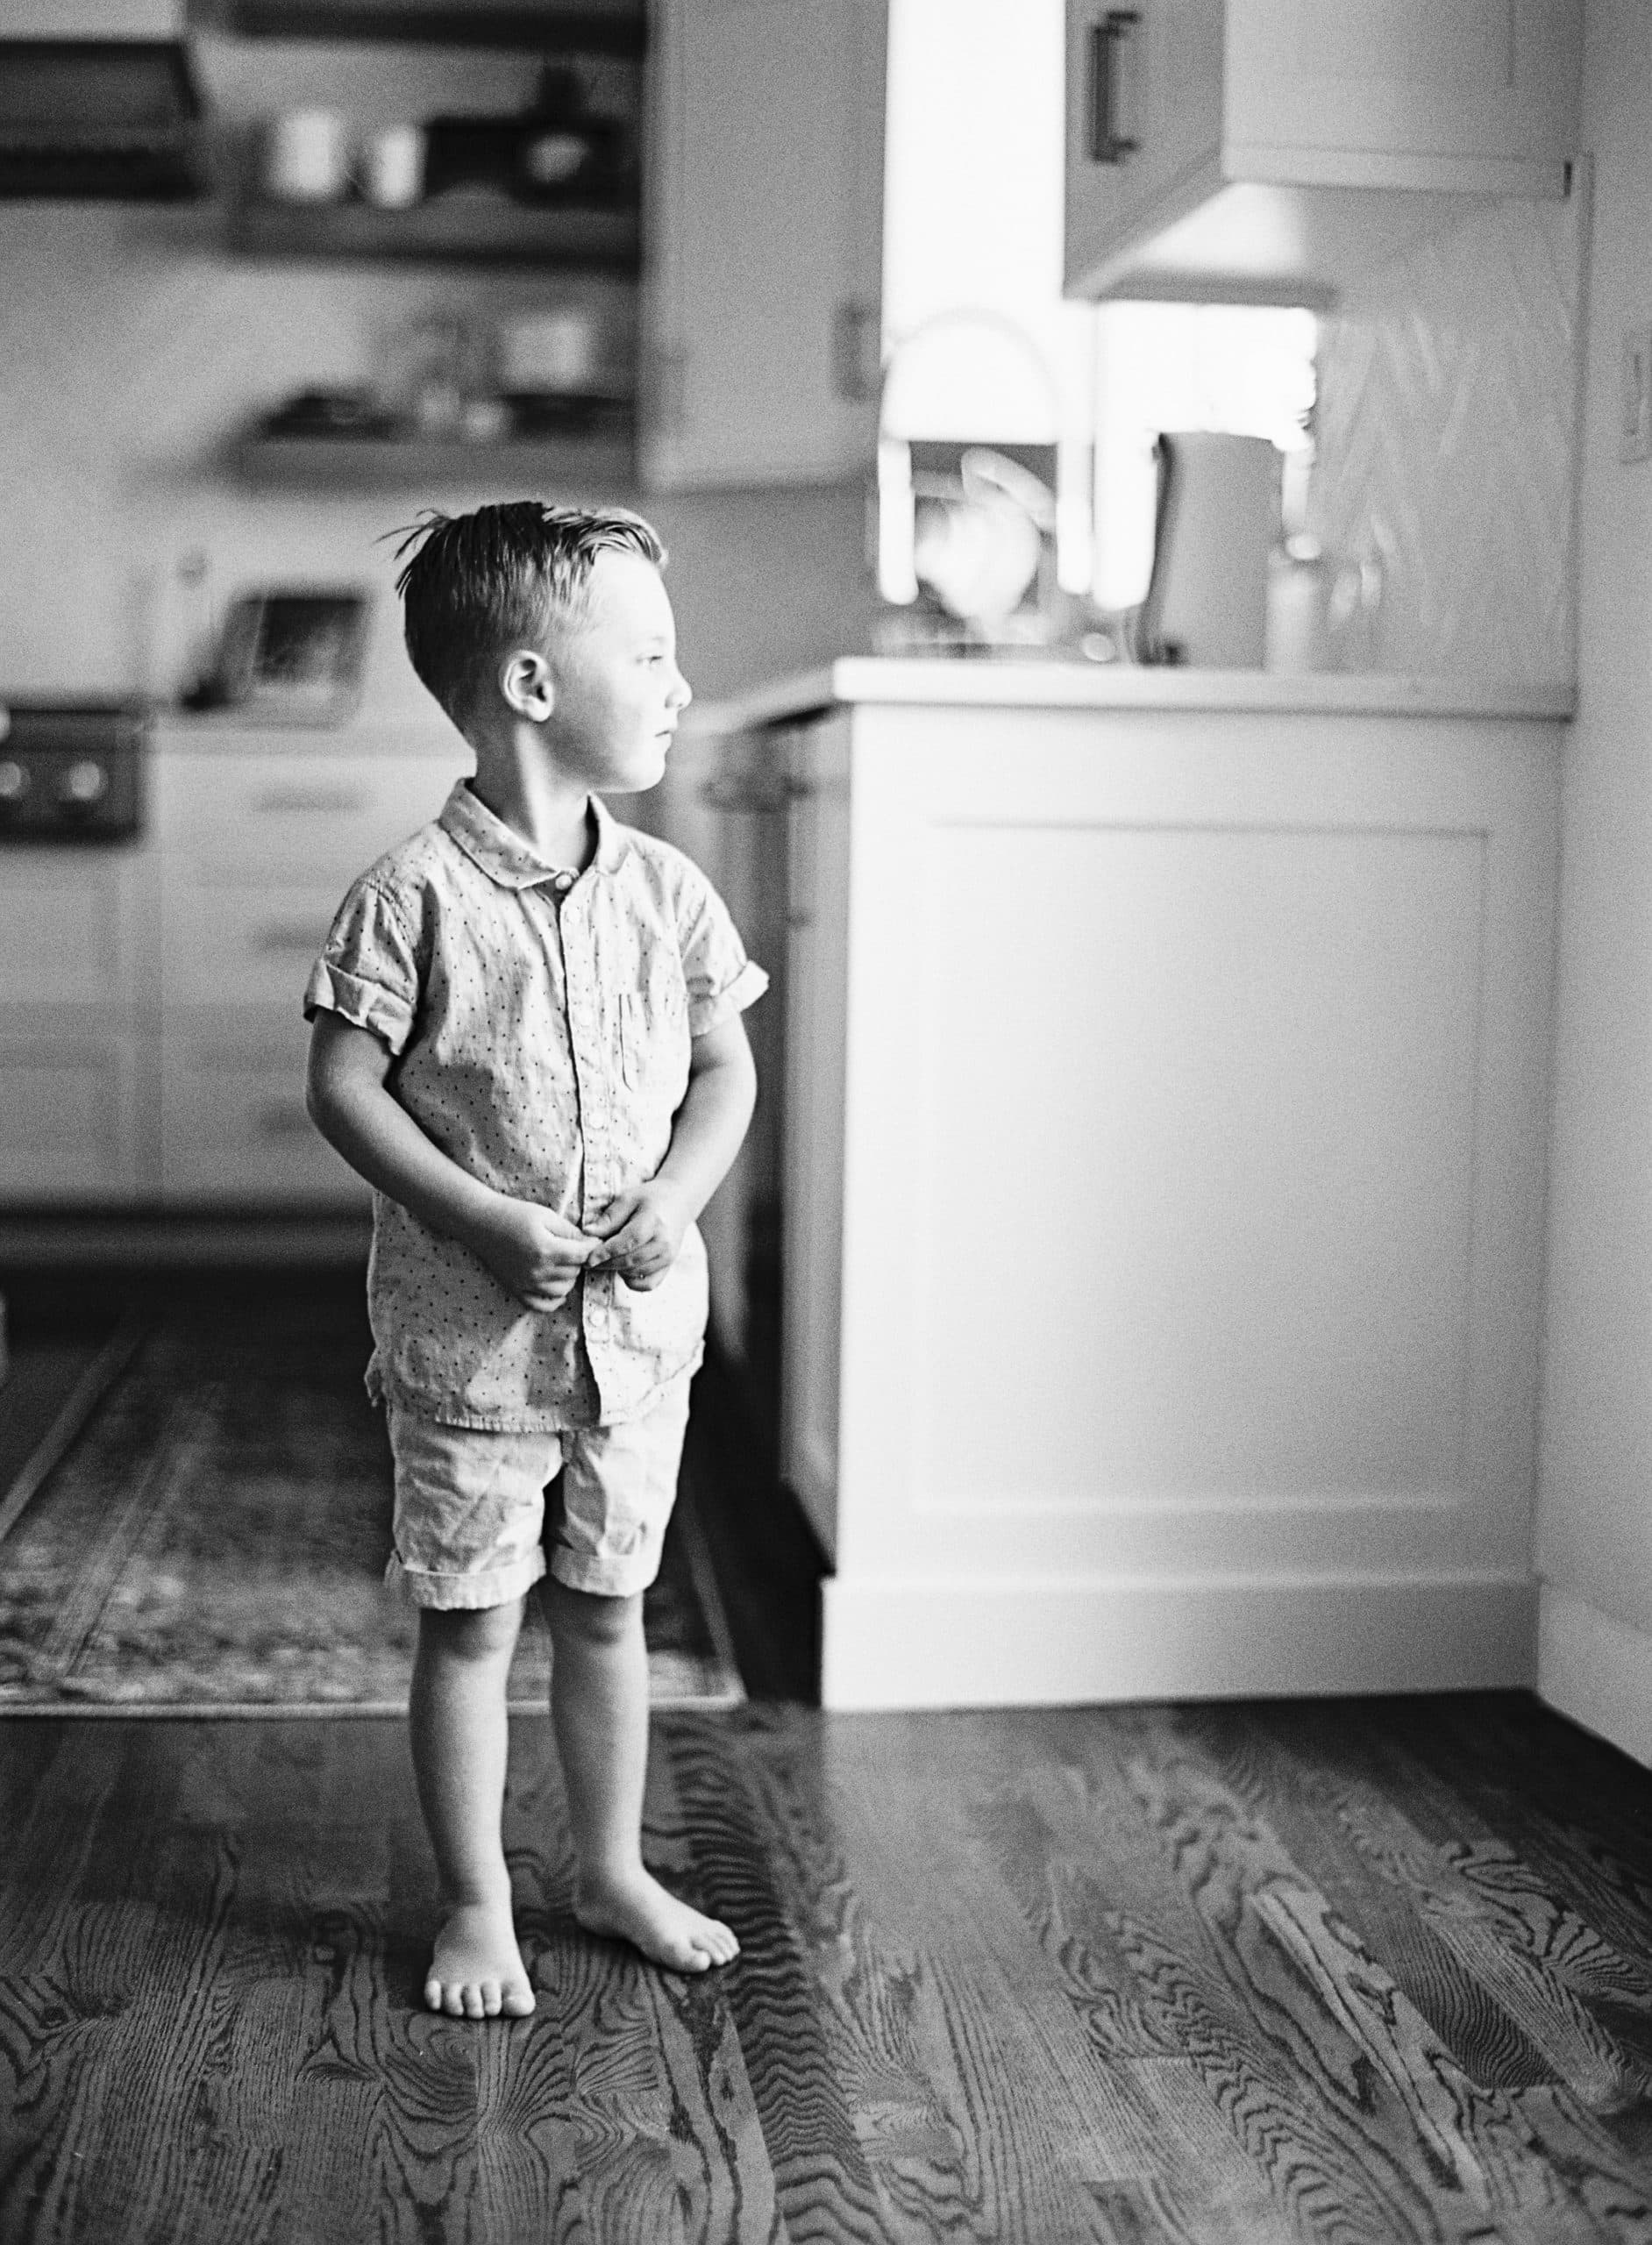 A photo of a young boy staring out the window.